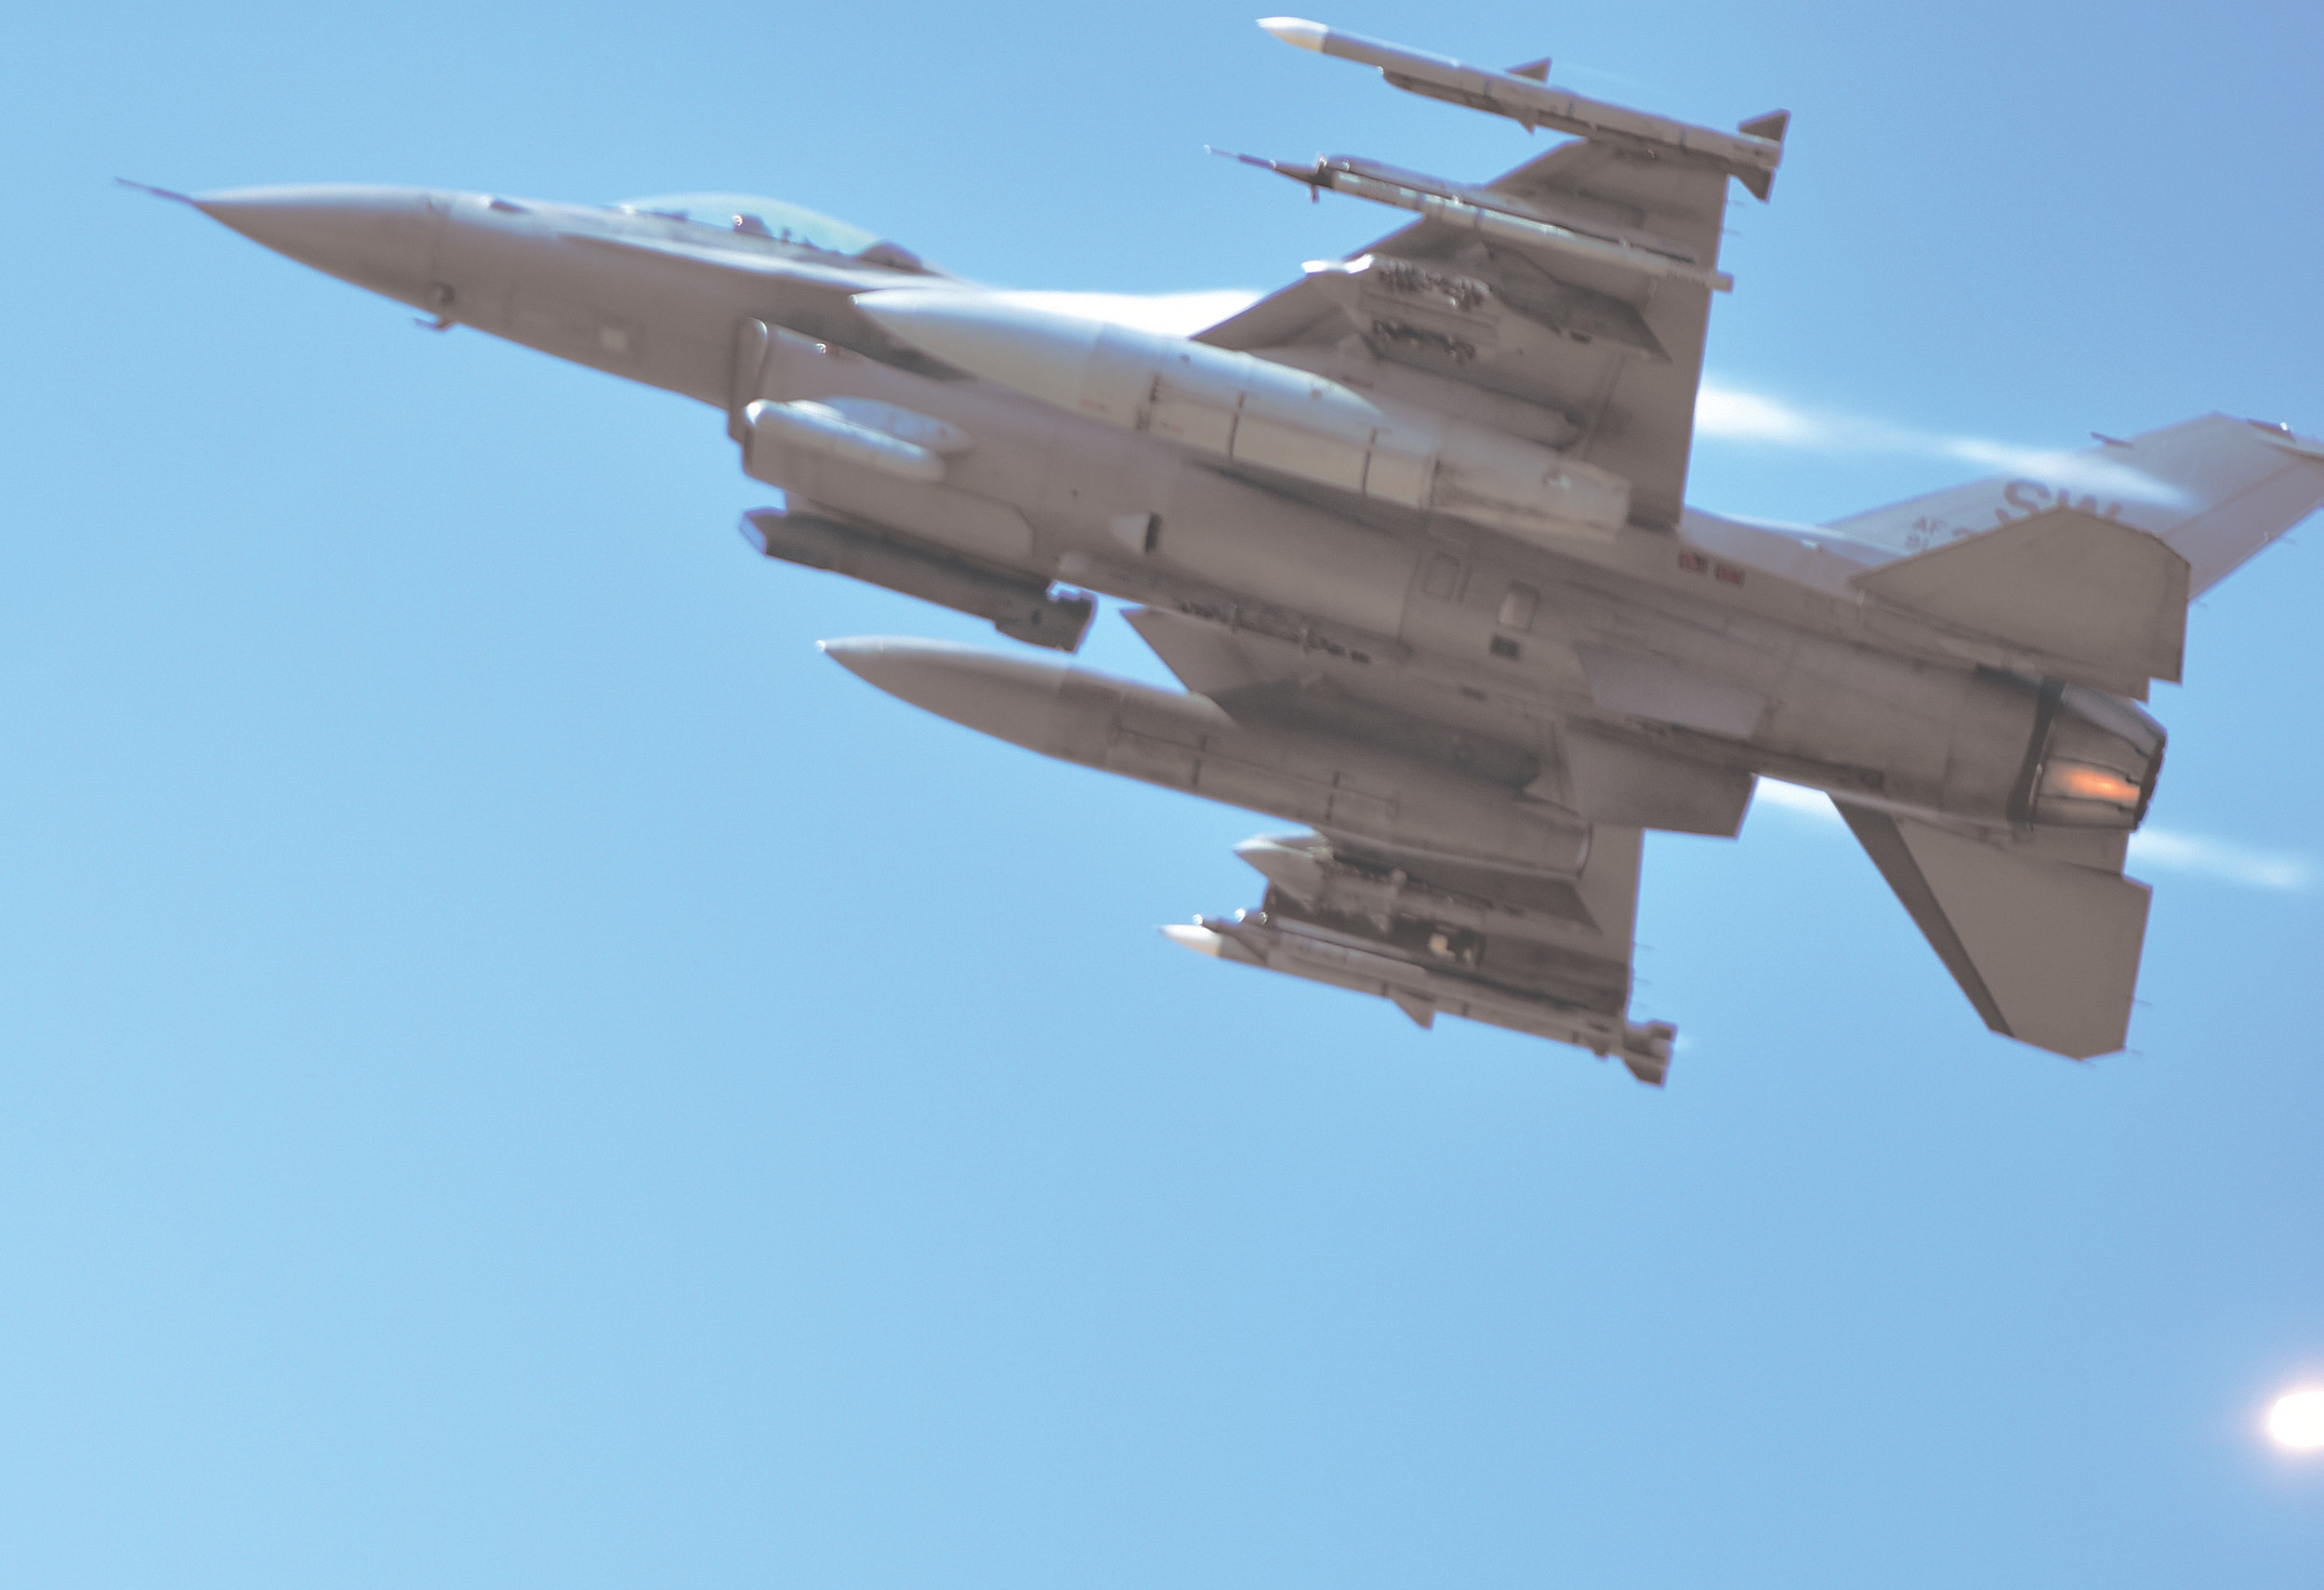 "An F-16 Fighting Falcone pulls up after firing its guns at a ground target on Friday at Poinsett Electronic Combat Range during the 77th Fighter ""Gambler"" Squadron's Range Day demonstration. The flare released by the aircraft as it fires is visible in the lower right corner of the image."